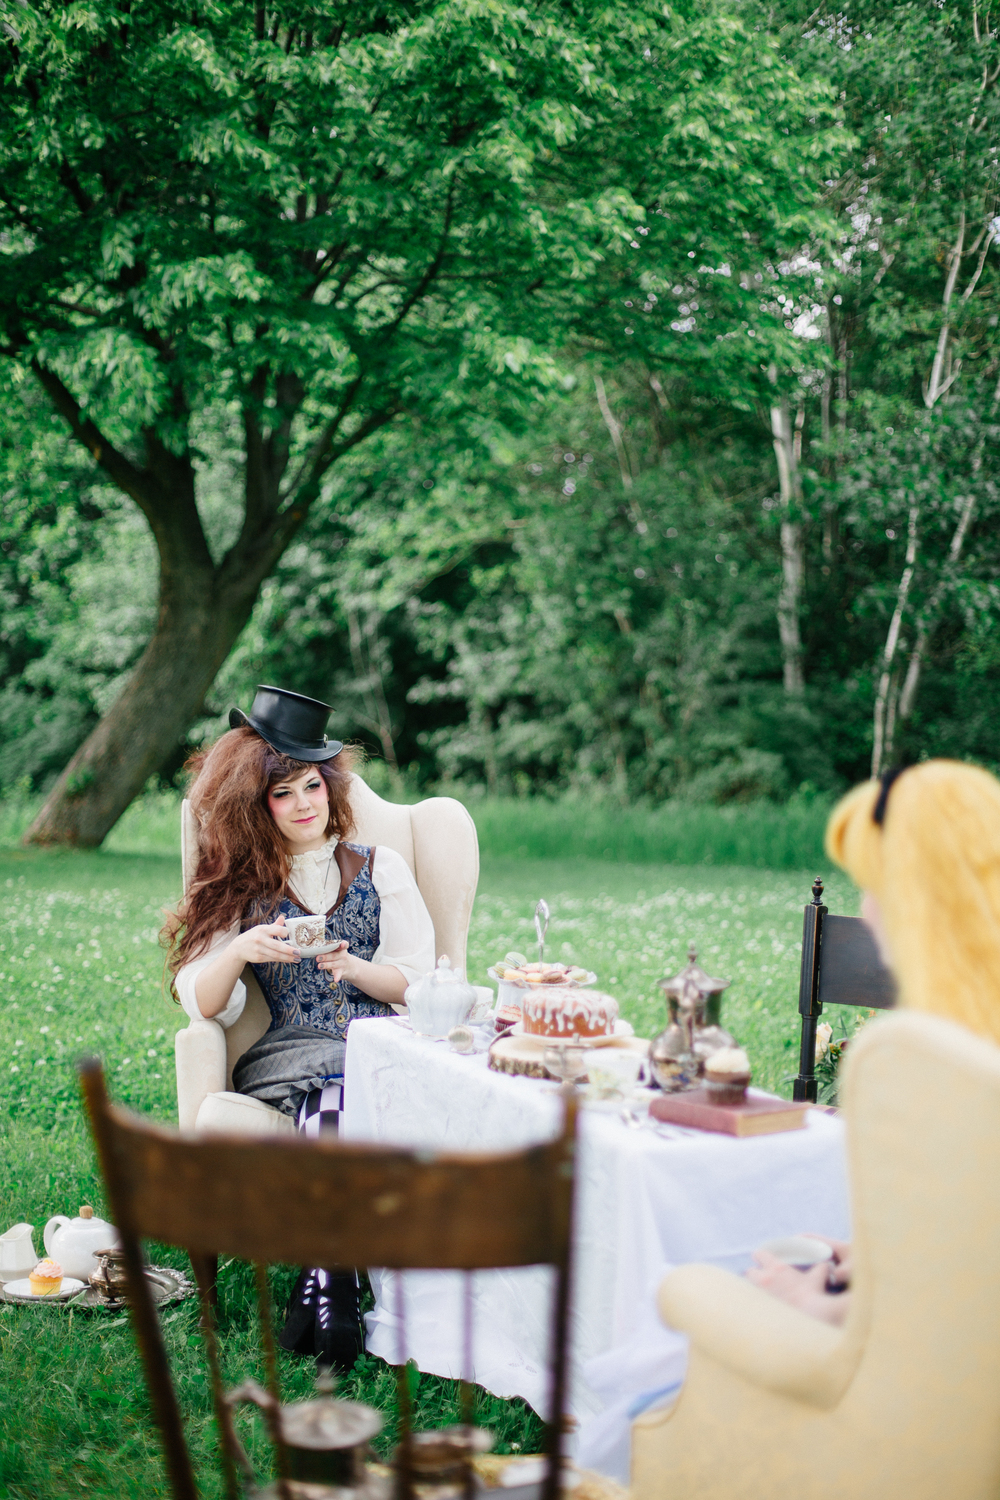 wedding_photographer_minnesota_jen_montgomery_photography[teaparty]-4.jpg